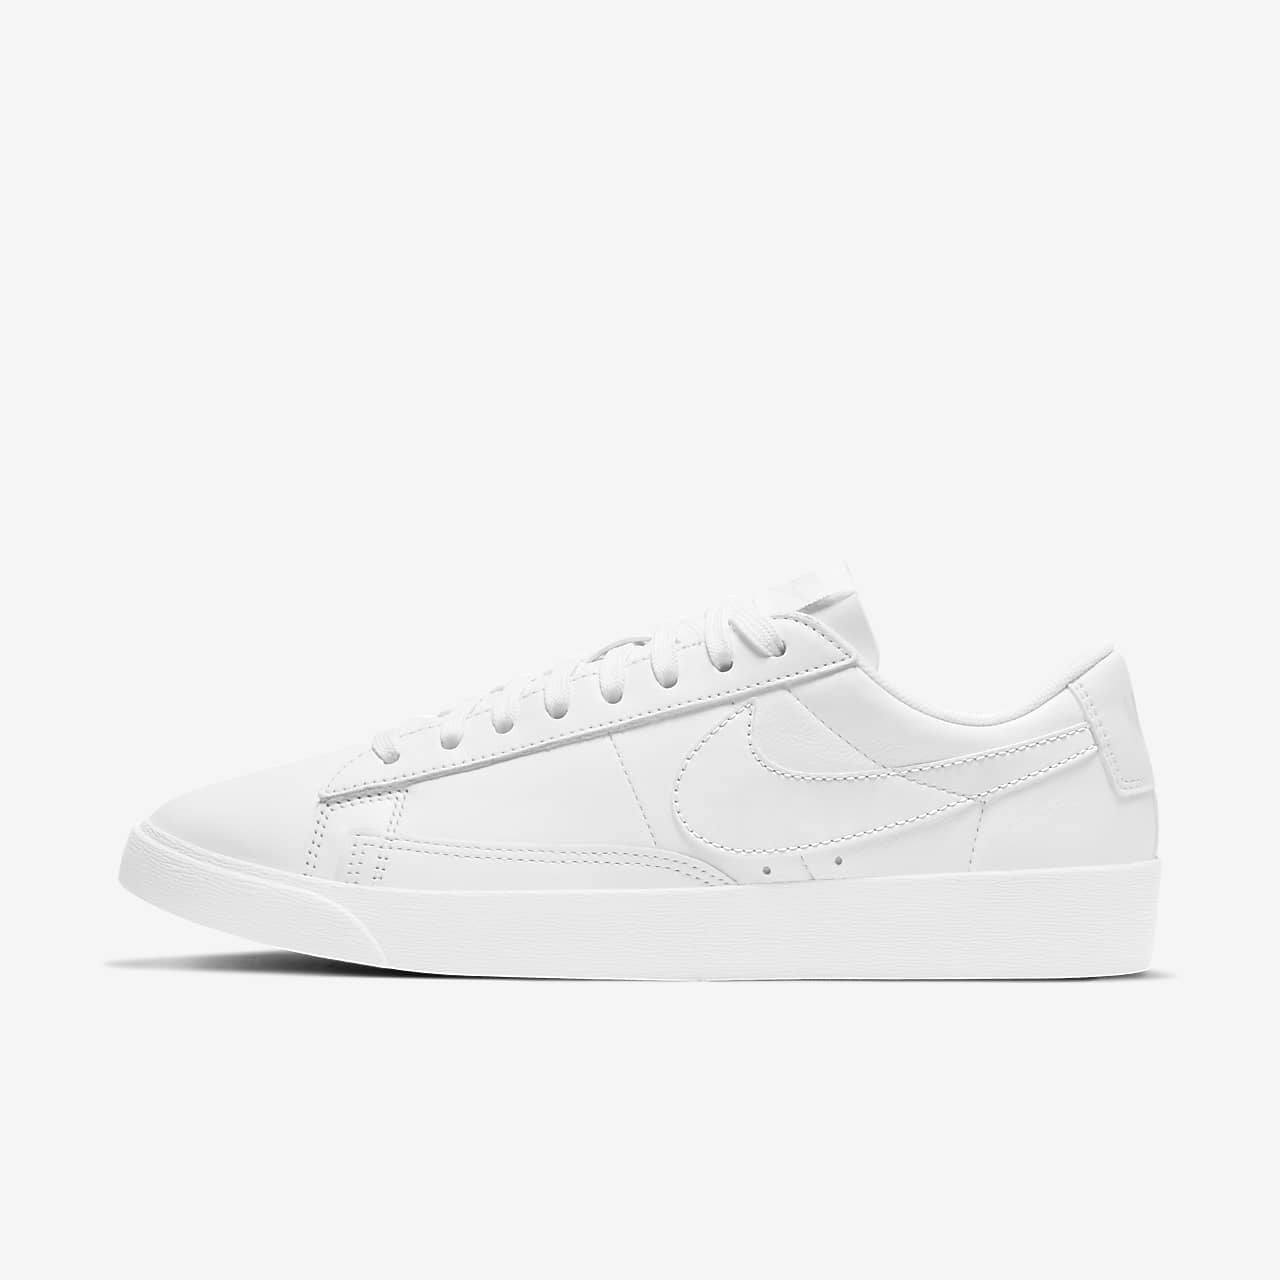 uk availability 2545f 82d2e Nike Blazer Low LE Women's Shoe